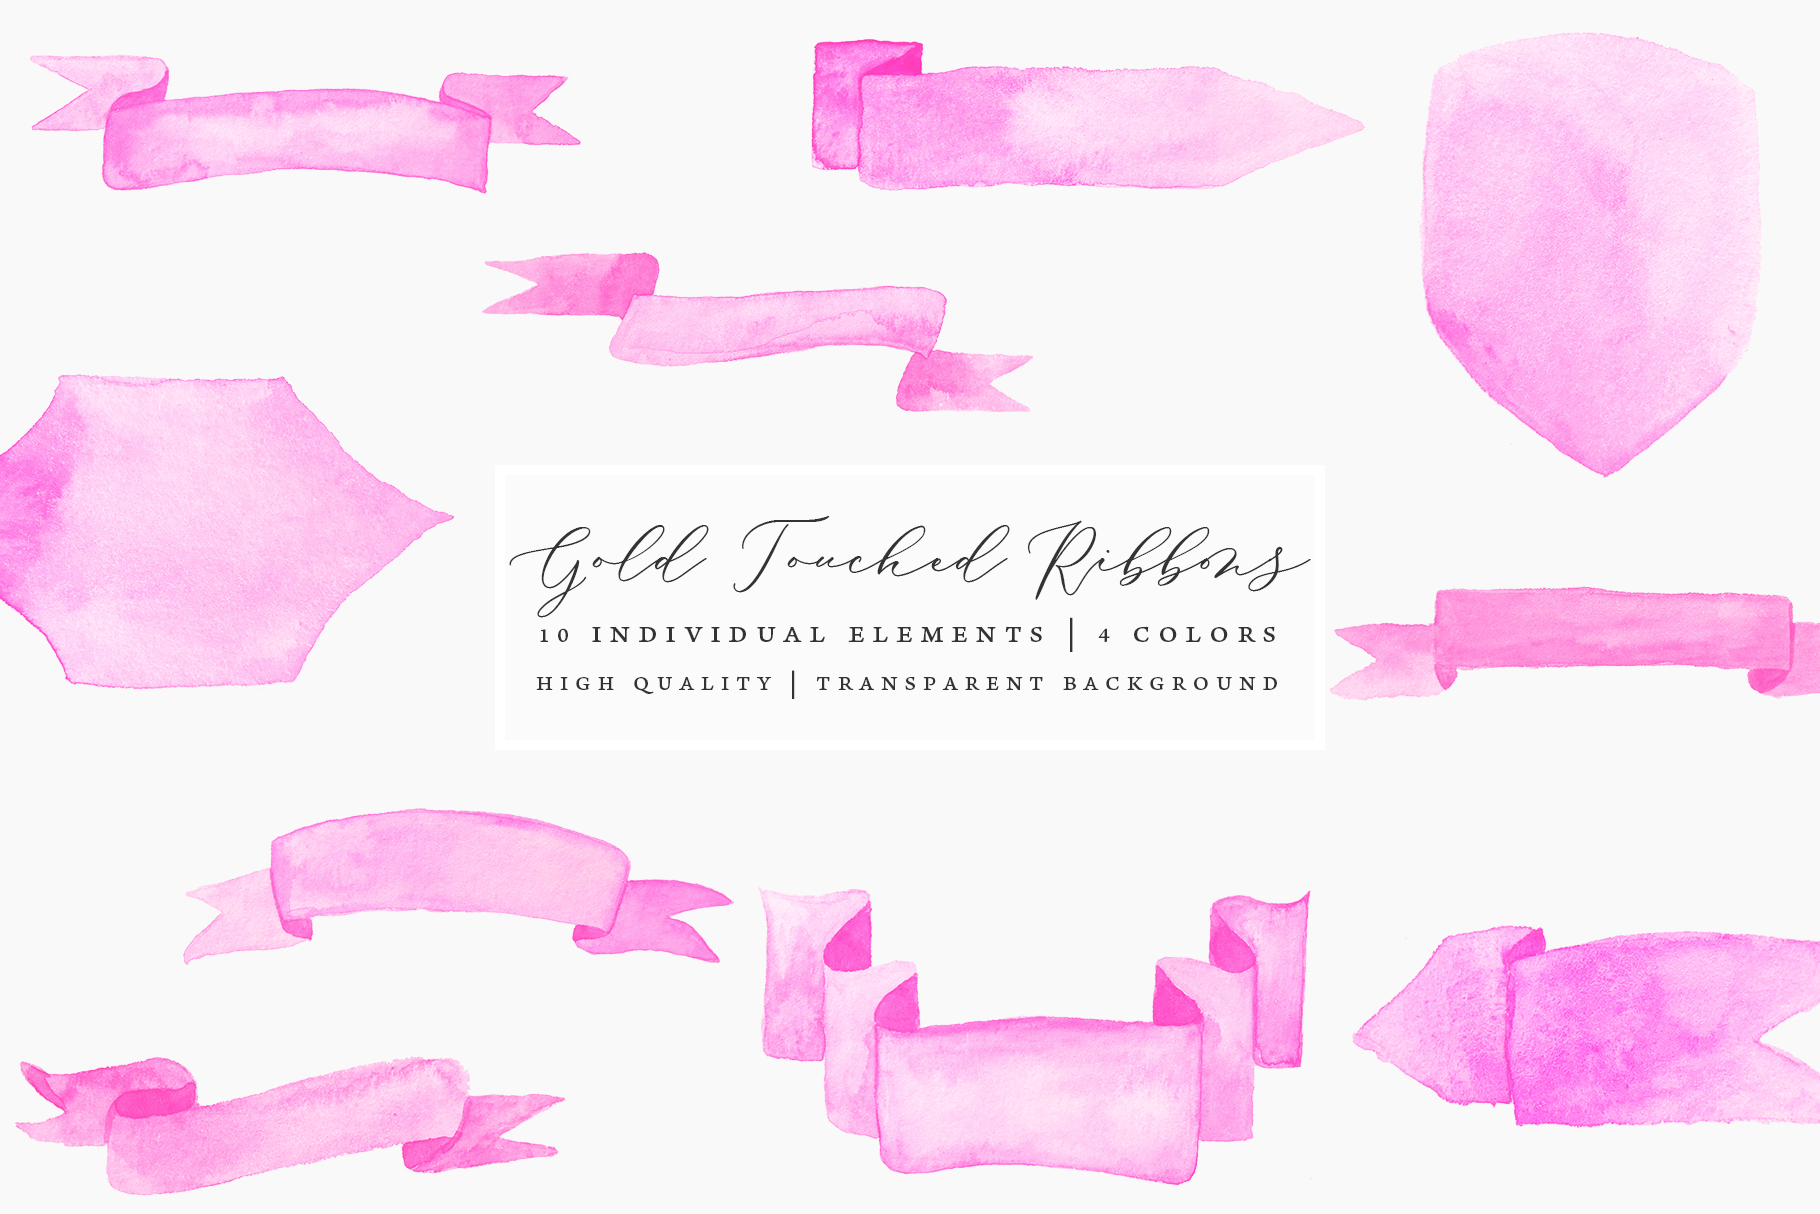 Gold Touched Ribbons - Blue, Pink, Gold example image 7